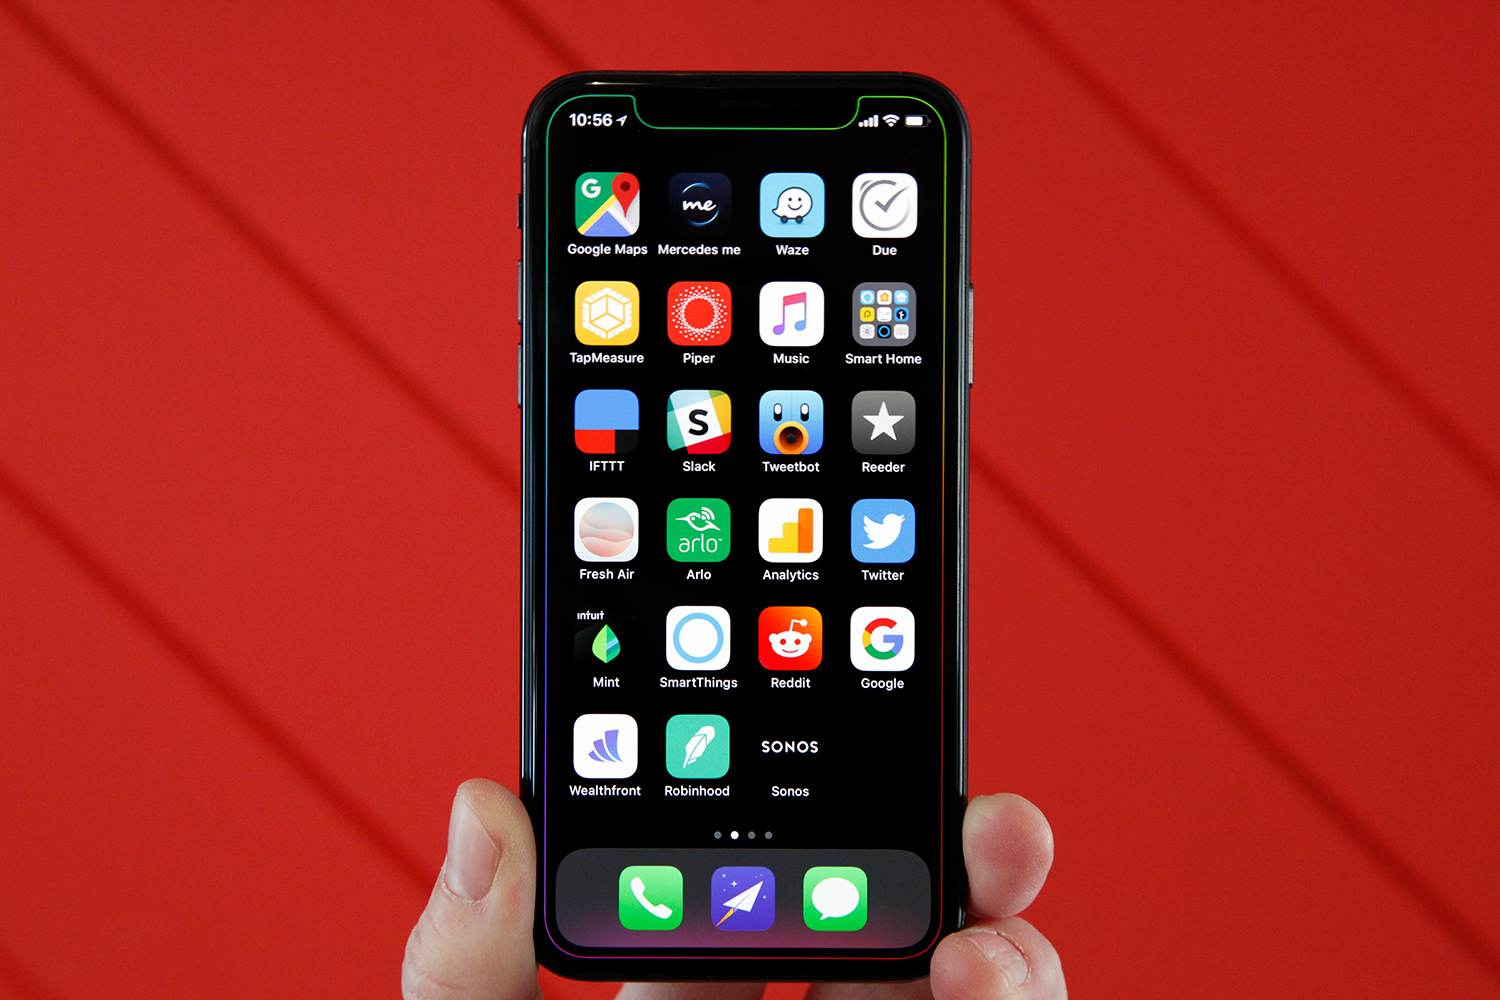 10 awesome hidden features you need to try in iOS 12